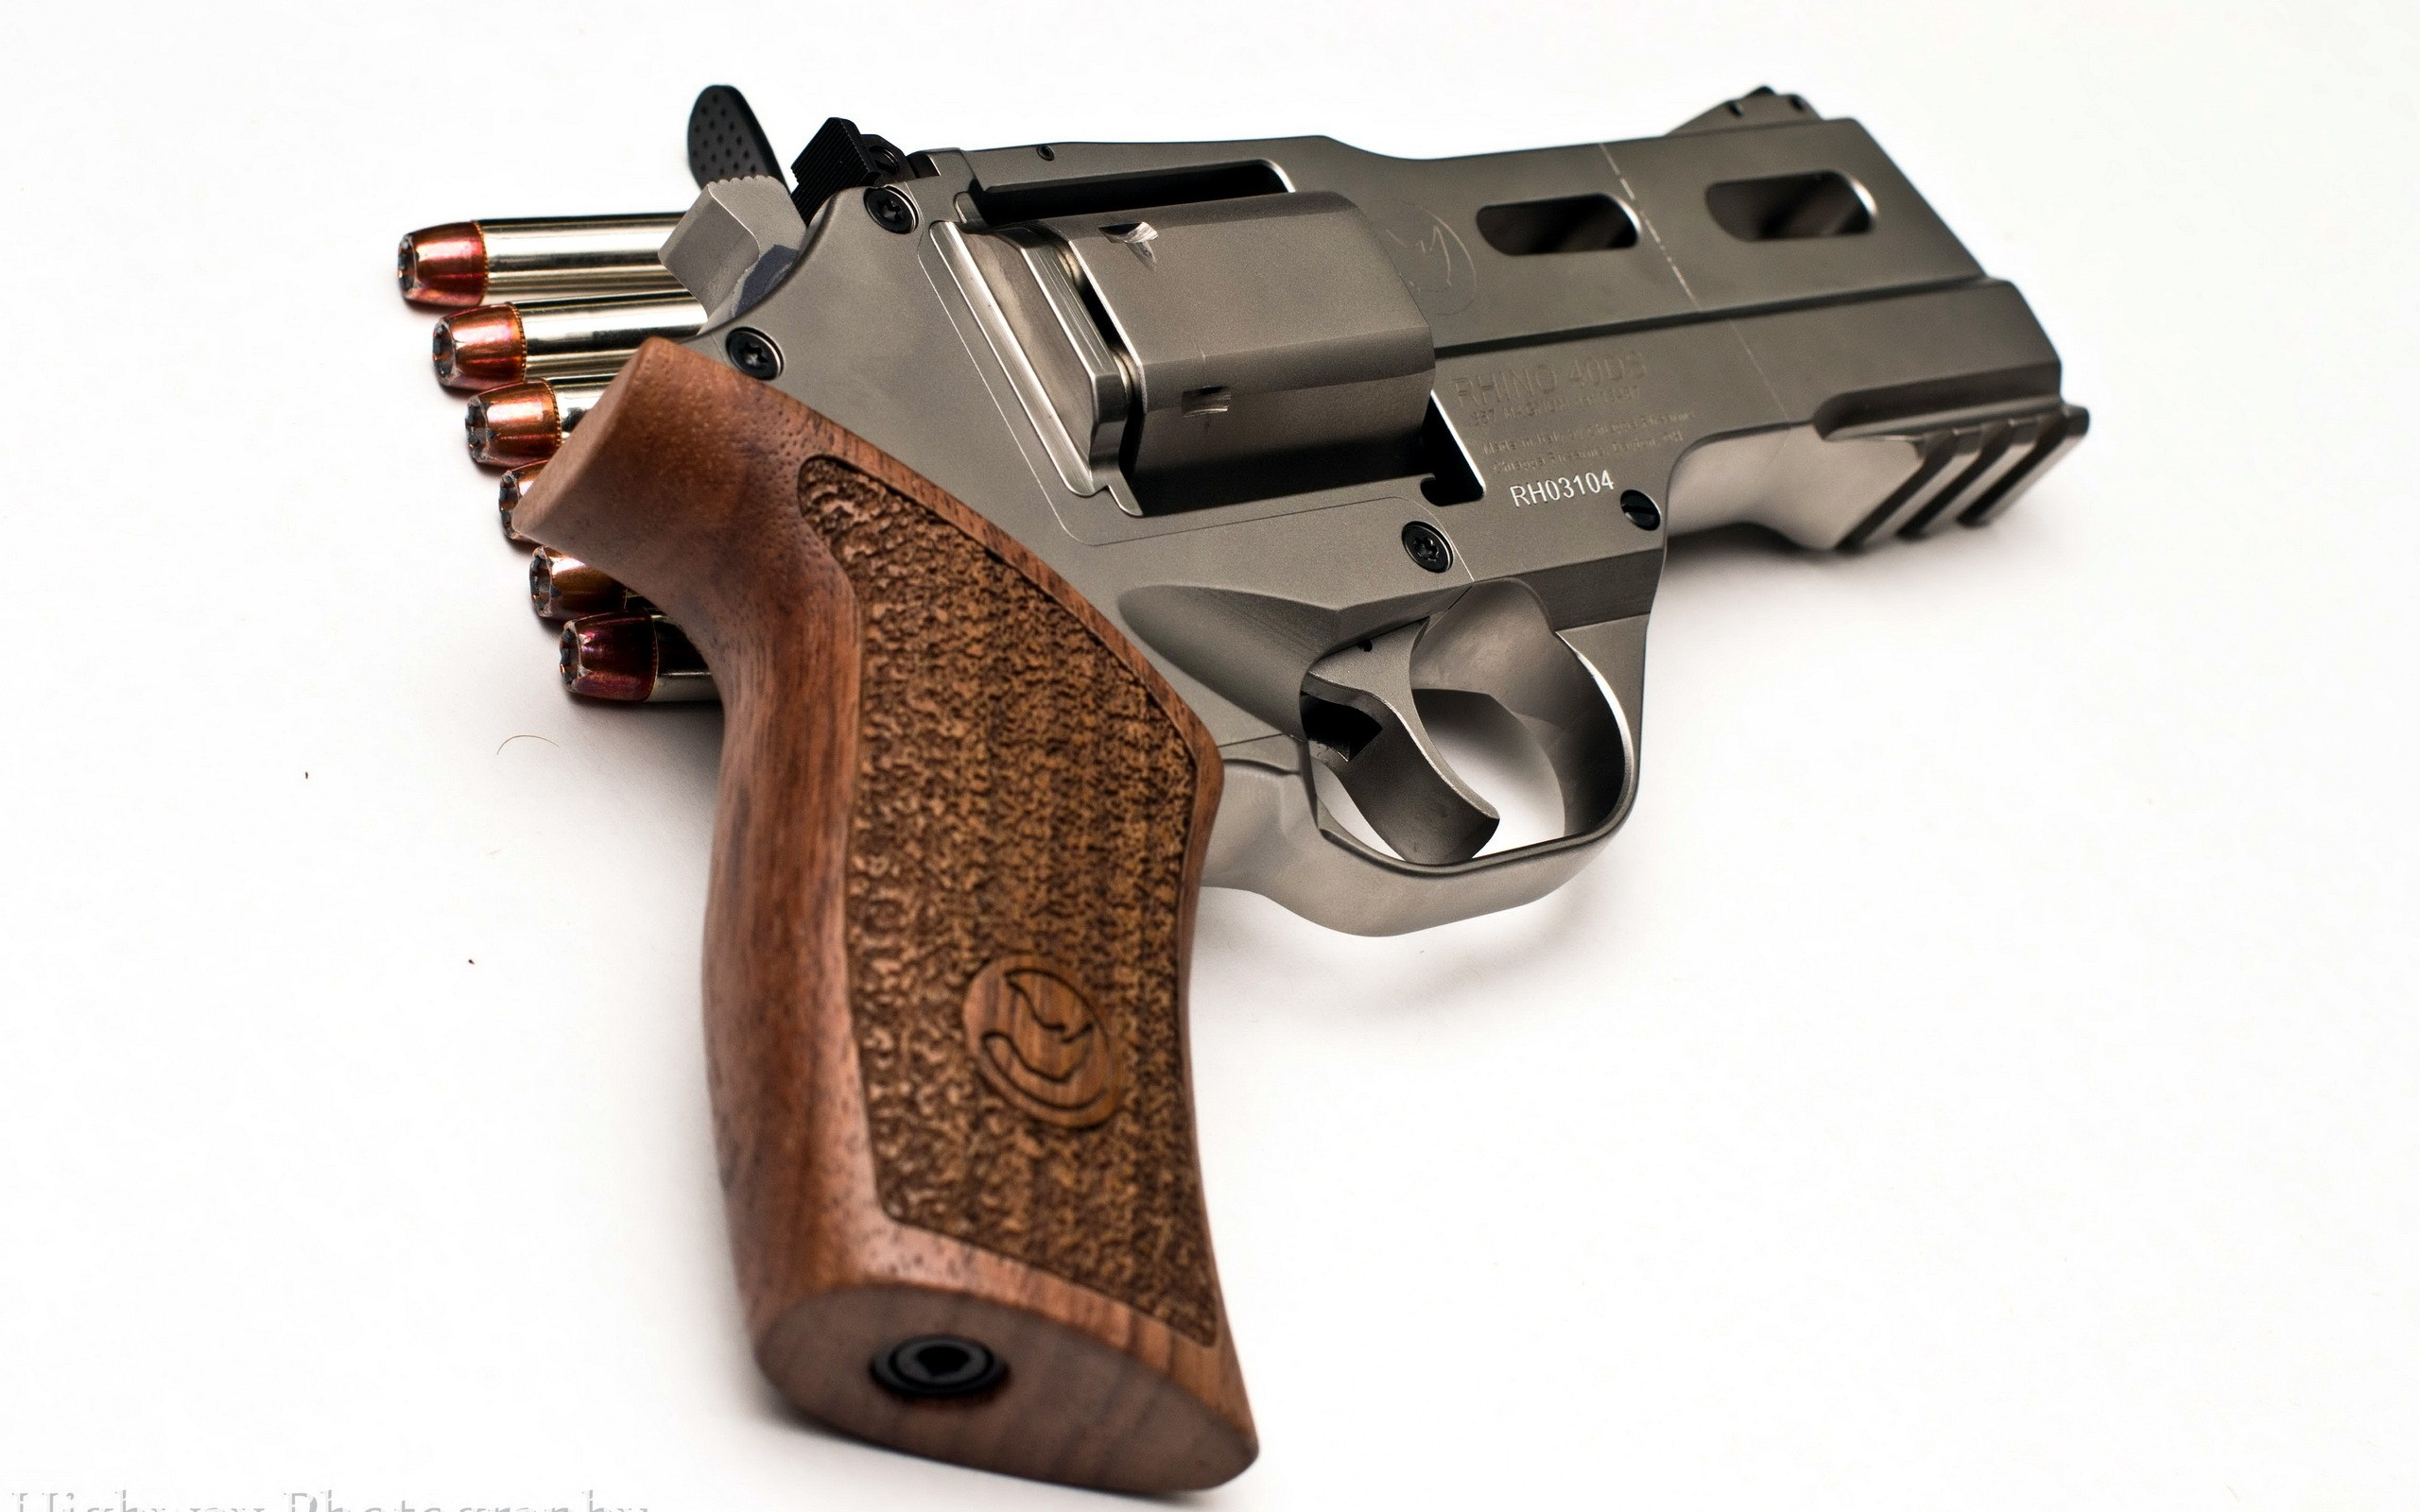 Amazing Chiappa Rhino Revolver Pictures & Backgrounds